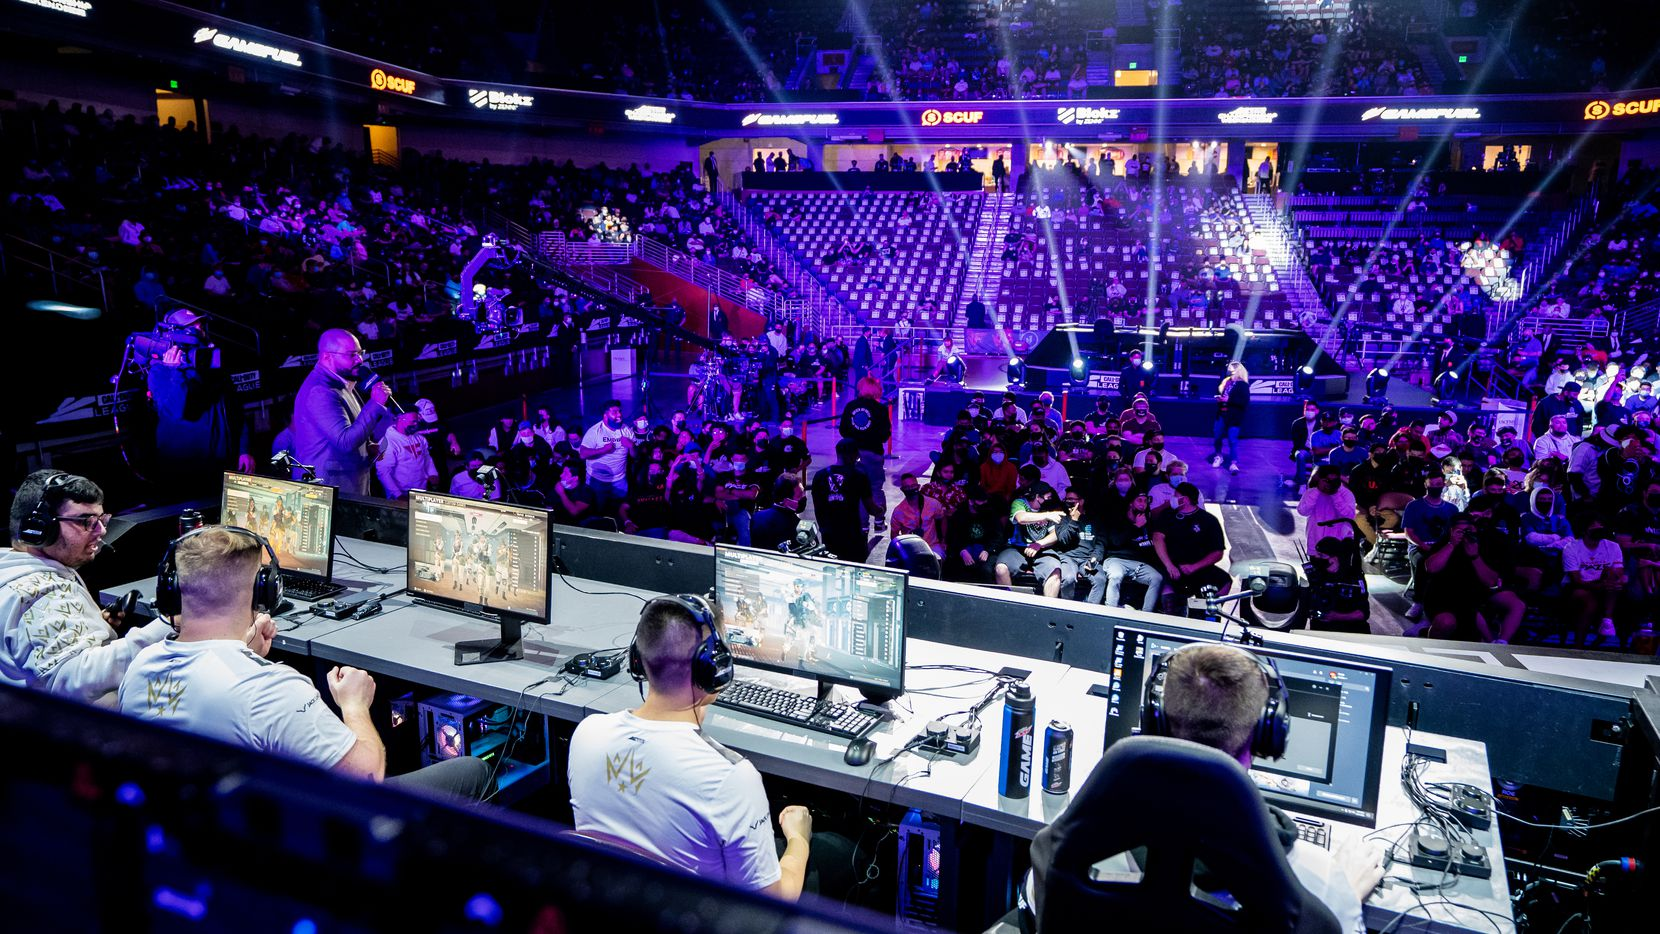 The Dallas Empire take the stage for their elimination match against the Toronto Ultra at the Call of Duty league playoffs at the Galen Center on Saturday, August 21, 2021 in Los Angeles, California.